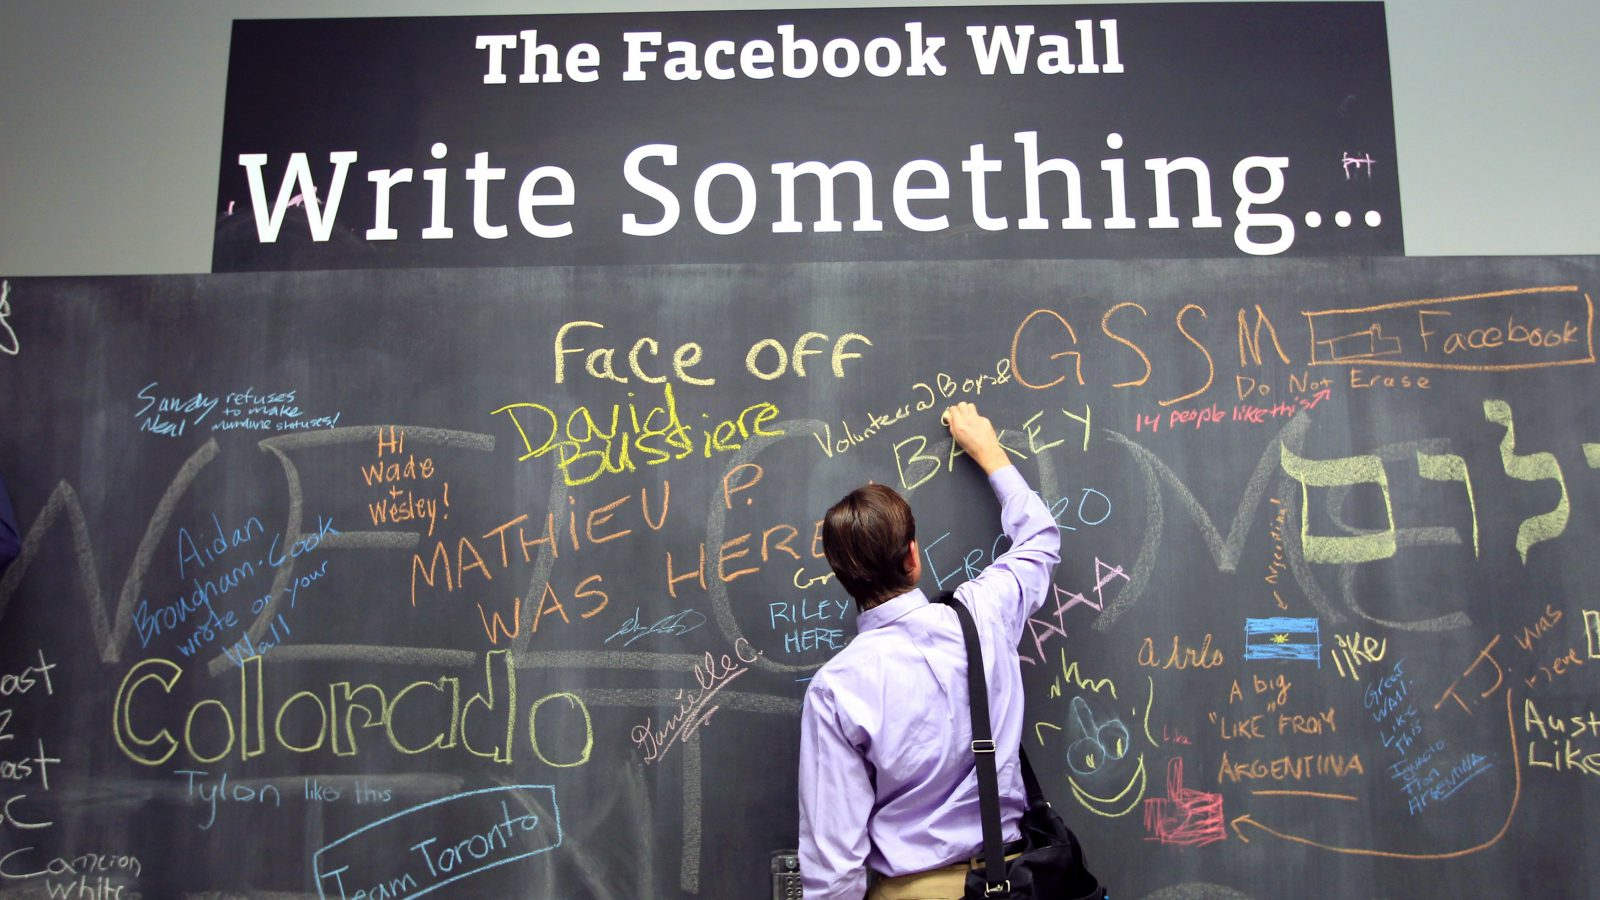 An employee writes a note on the message board at the new headquarters of Facebook in Menlo Park, California January 11, 2012. The 57-acre campus, which formerly housed Sun Microsystems, features open work spaces for nearly 2,000 employees on the one million square foot campus, with room for expansion. Picture taken January 11, 2012. REUTERS/Robert Galbraith  (UNITED STATES - Tags: SCIENCE TECHNOLOGY MEDIA TPX IMAGES OF THE DAY) - RTR2W75S